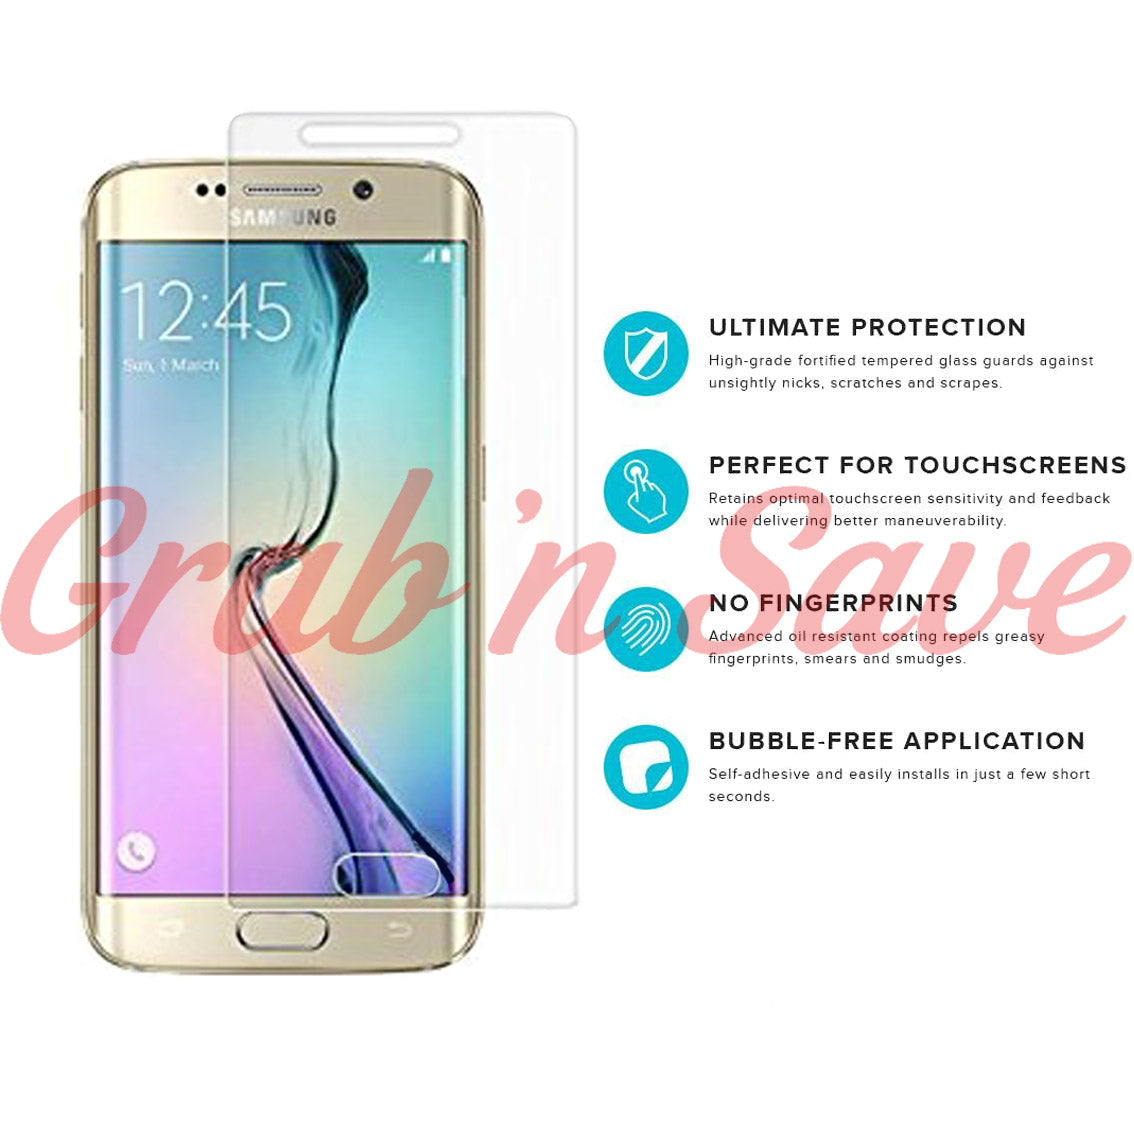 Samsung S6  Edge Screen Protector, Glass Screen Protector, Tempered Glass Screen Protector